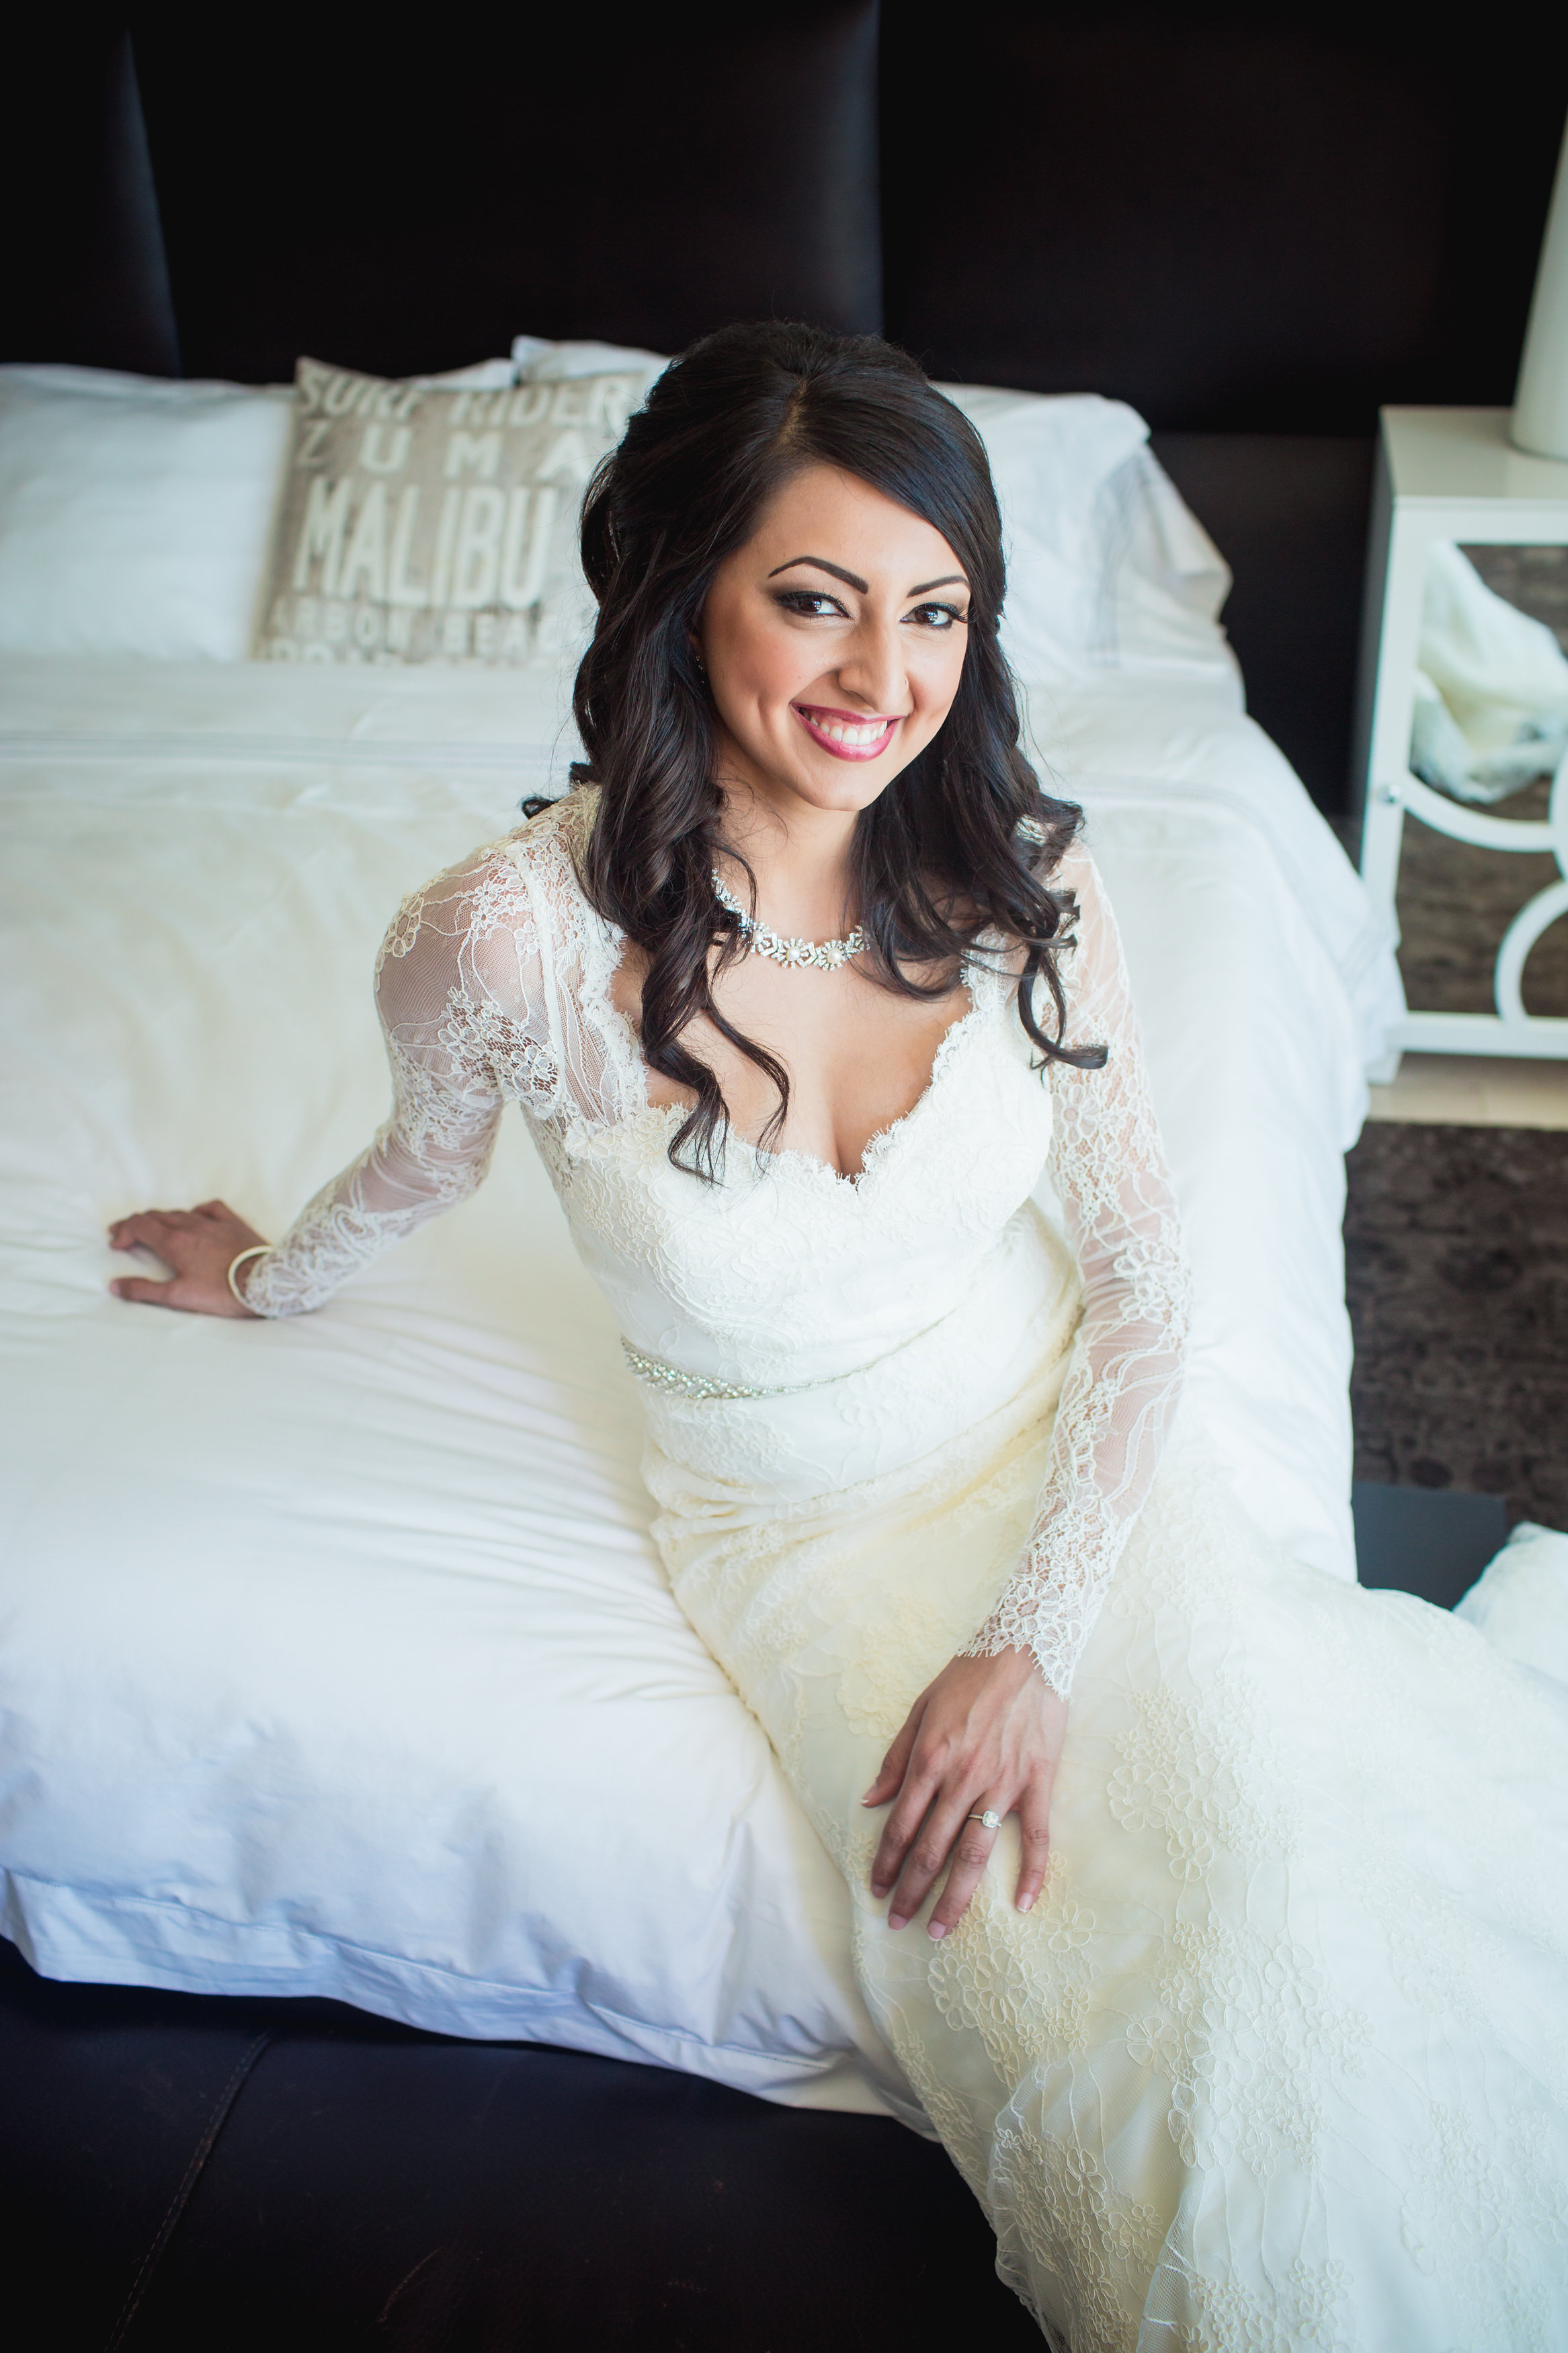 kris bryant wedding inspiration jessica delp long sleeve lace wedding dress